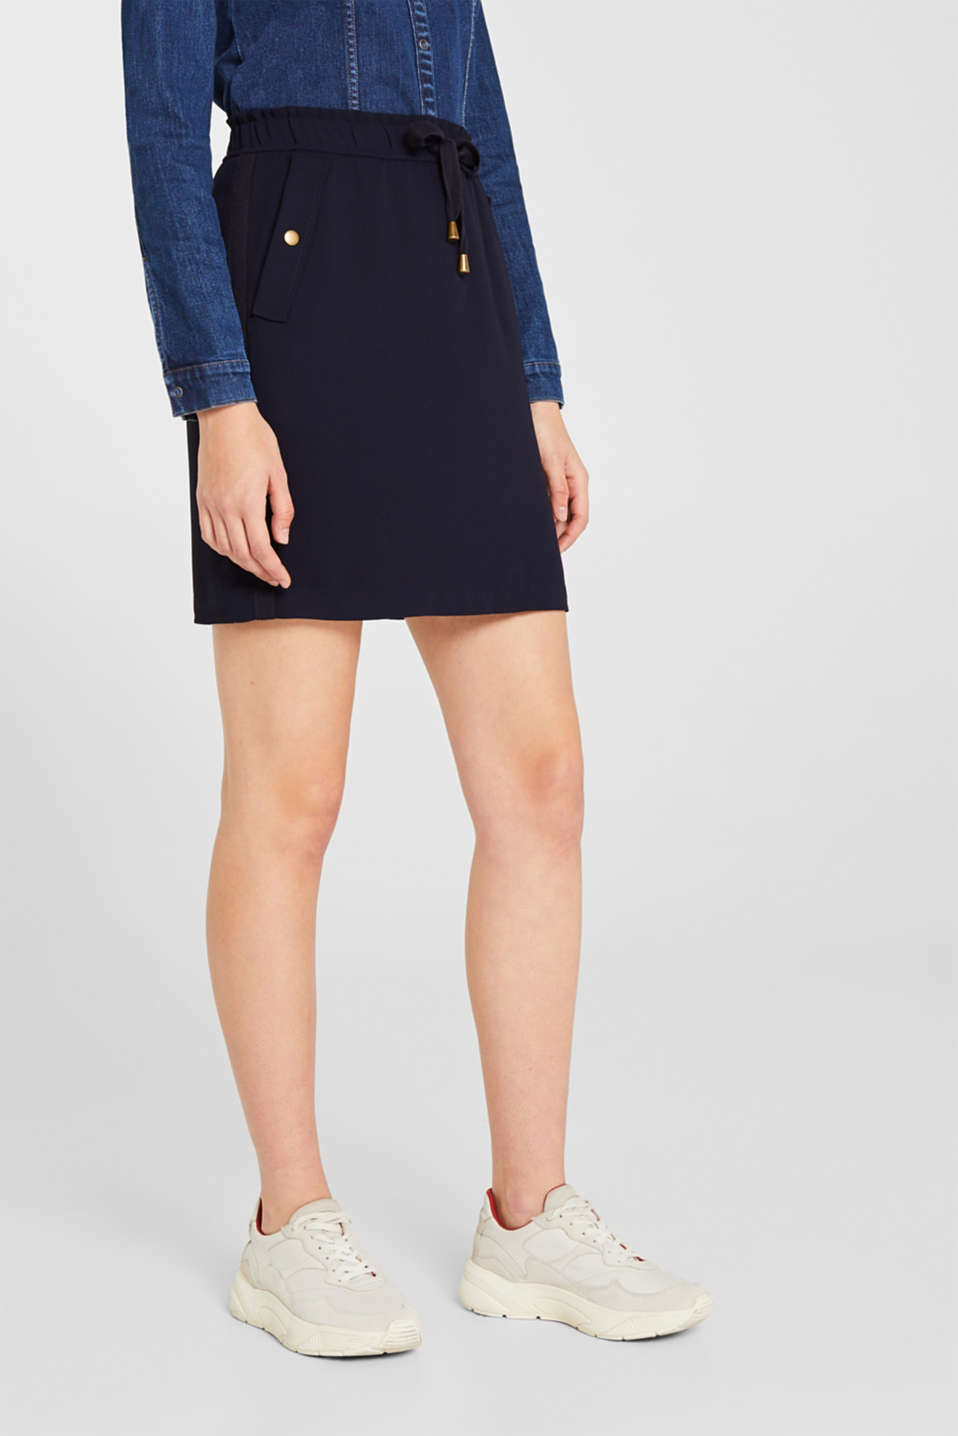 Crêpe skirt with a drawstring waistband, NAVY, detail image number 6